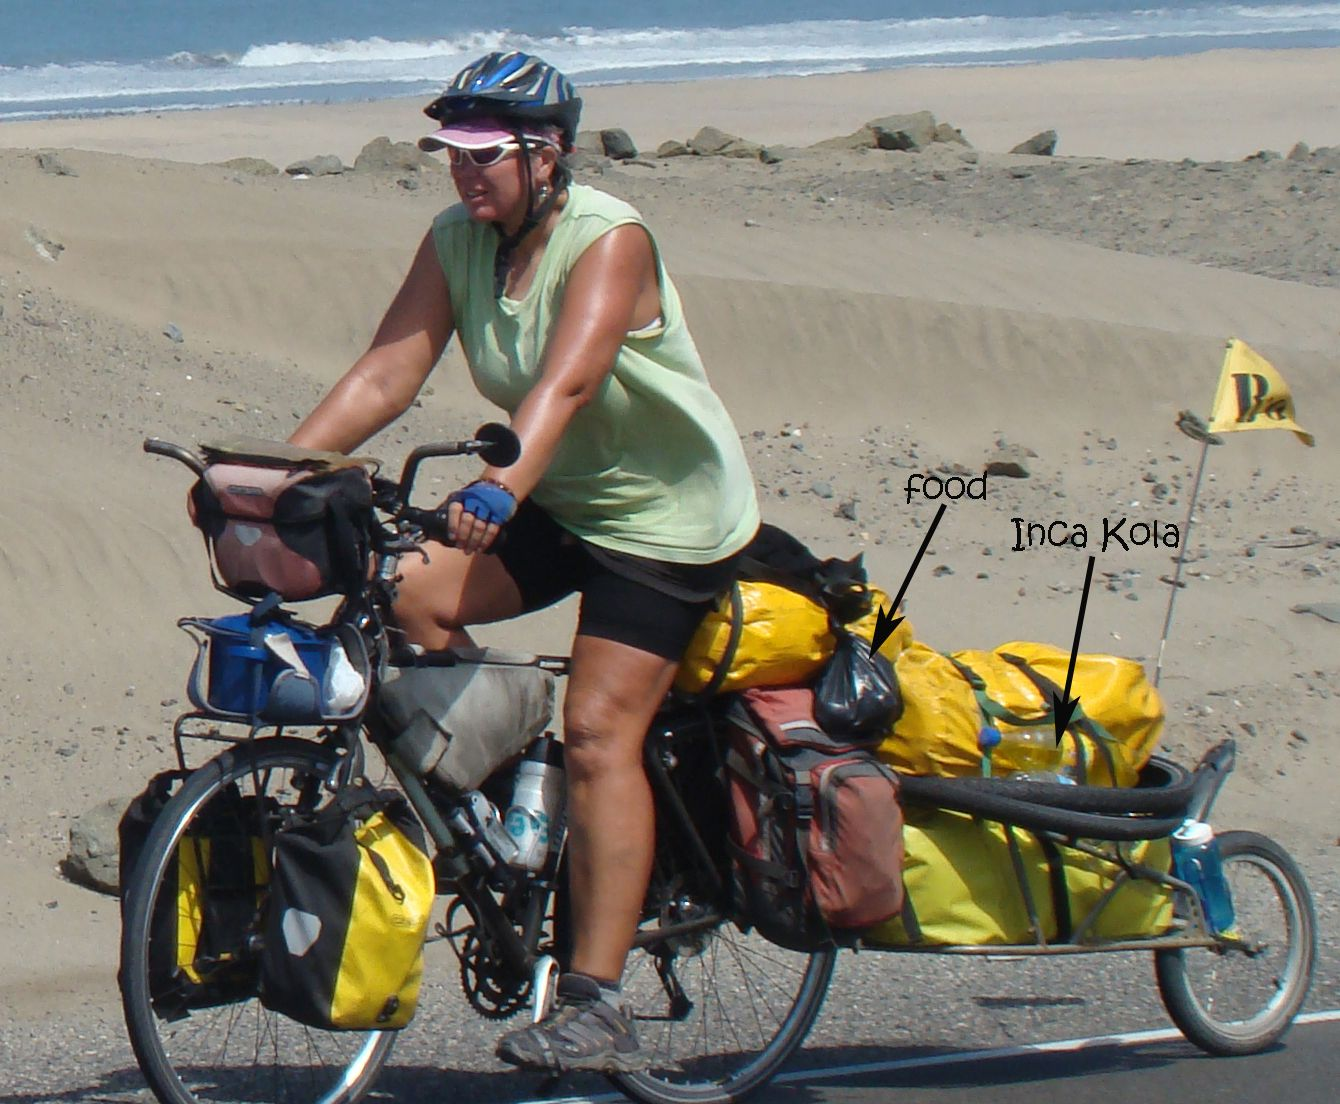 Food And Water For Bicycle Touringfamily On Bikes I Love